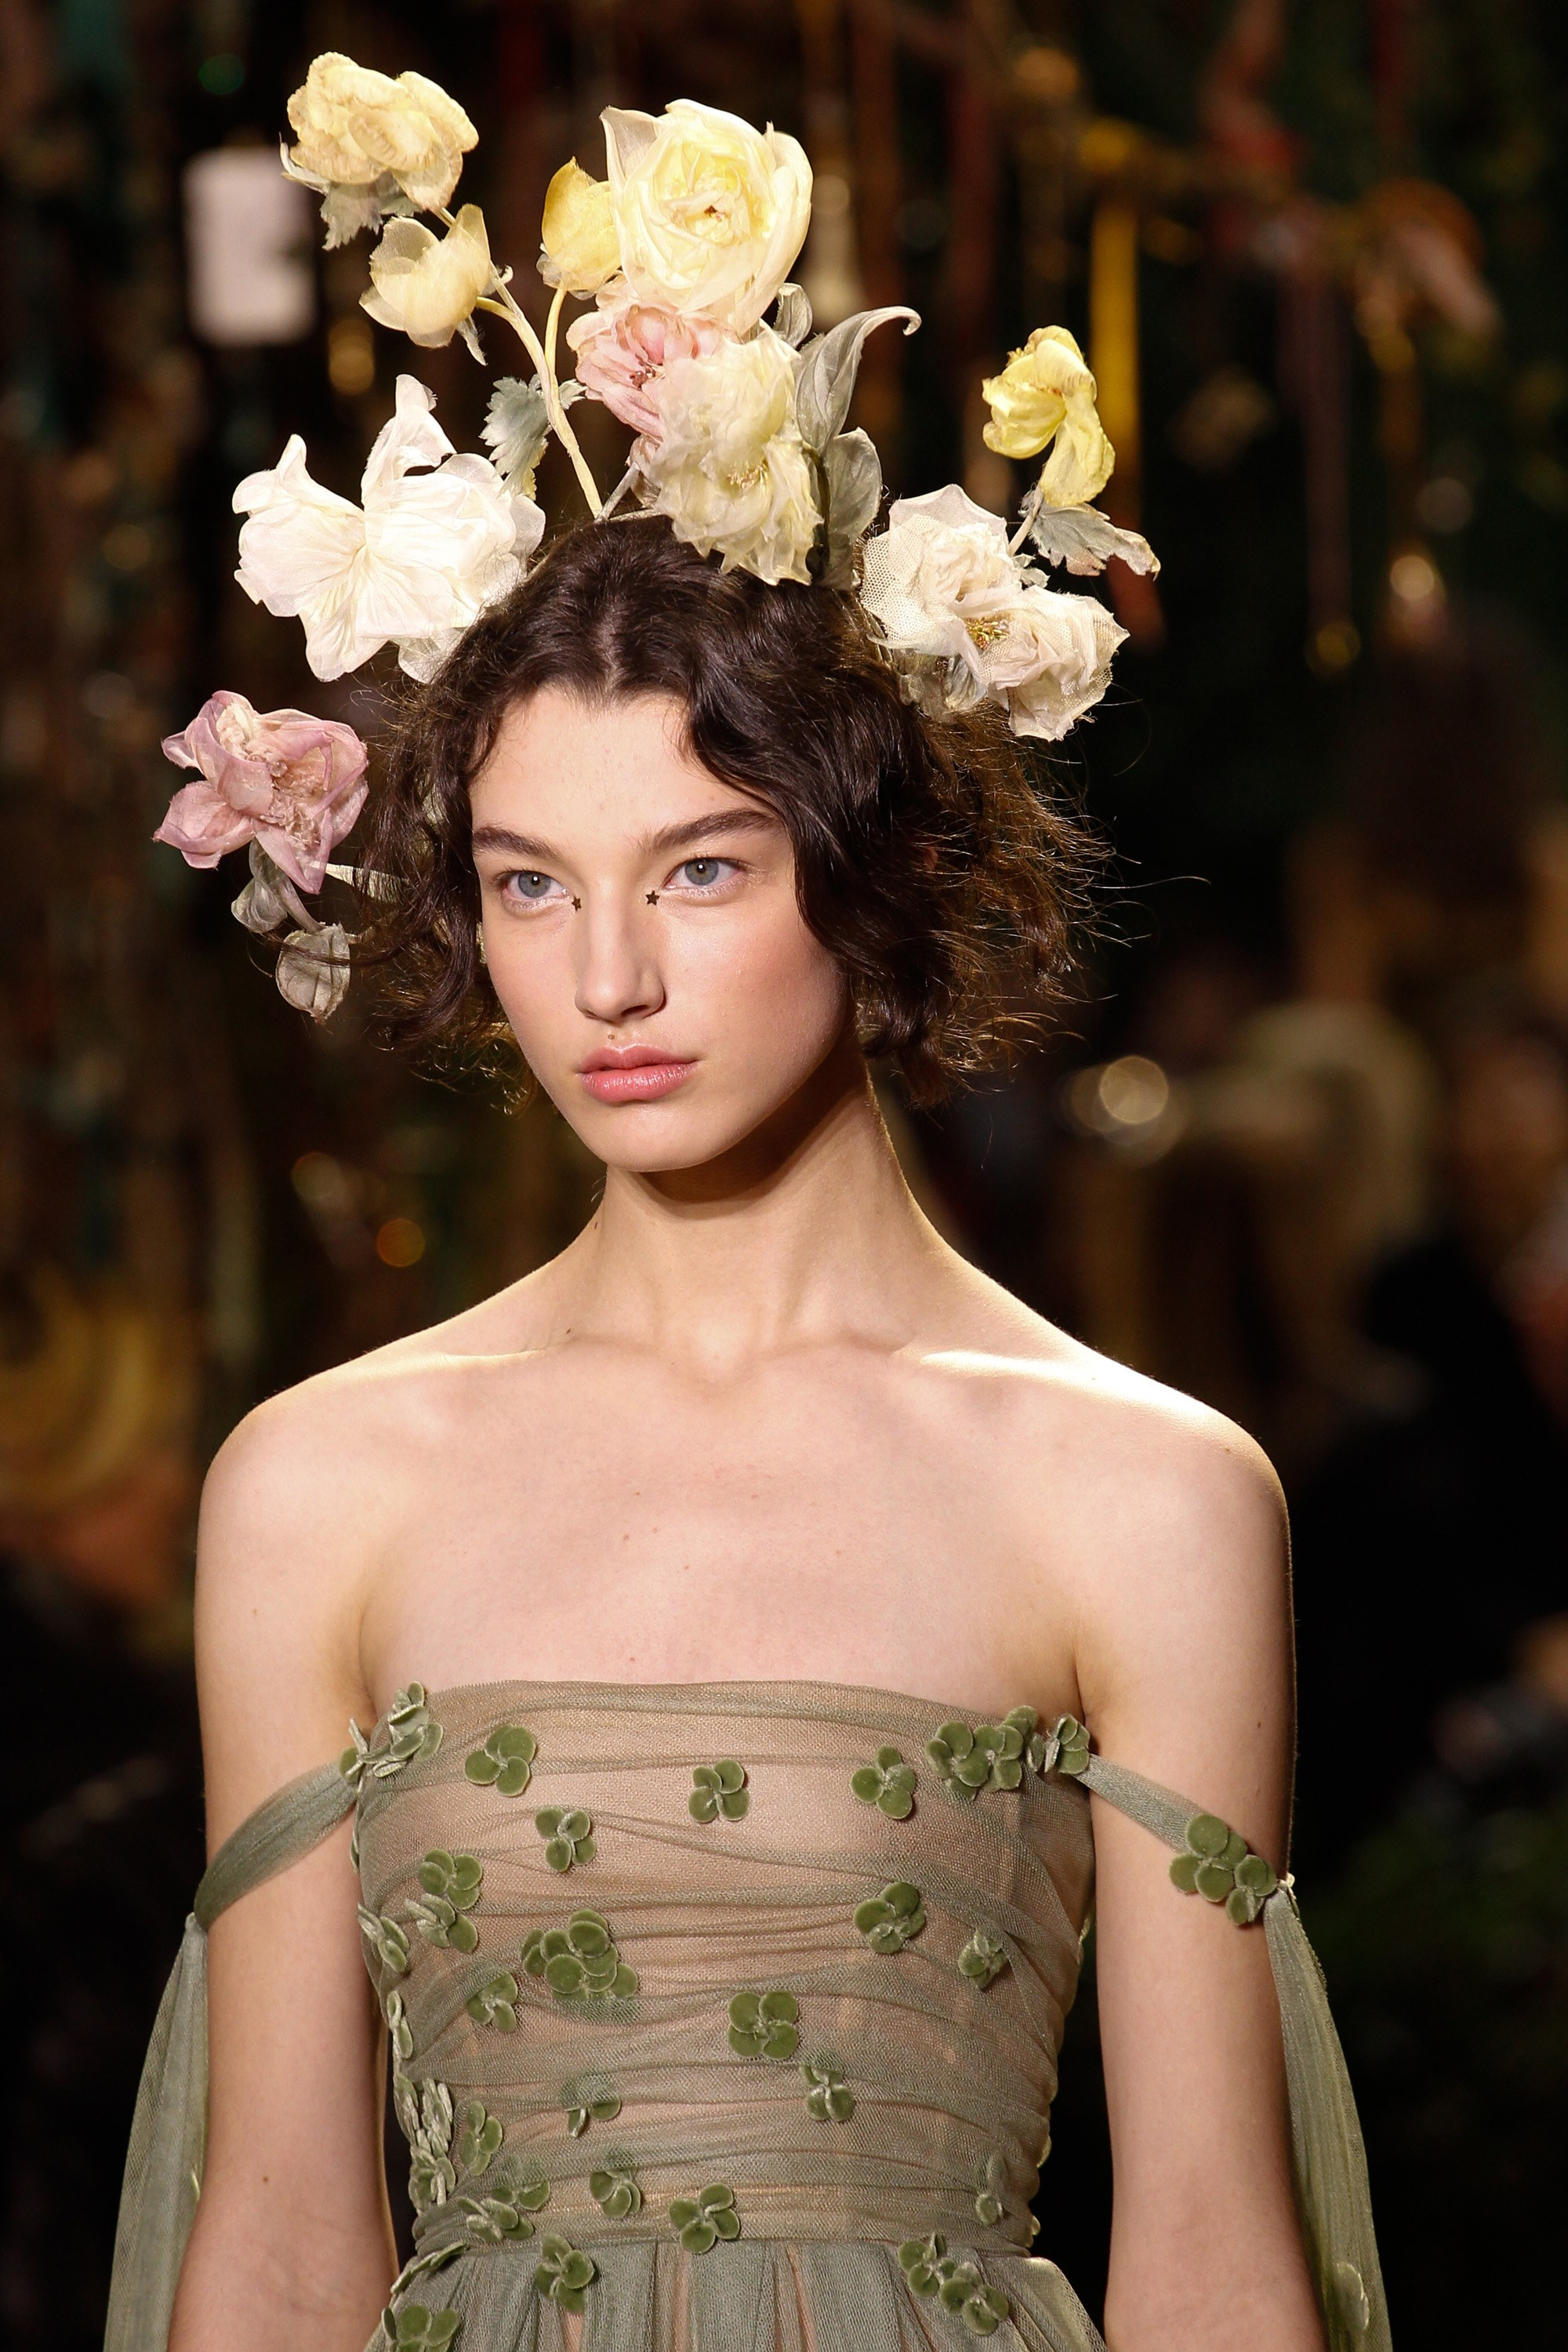 ROSE & IVY Journal Dior Spring 2017 Couture Beauty Look